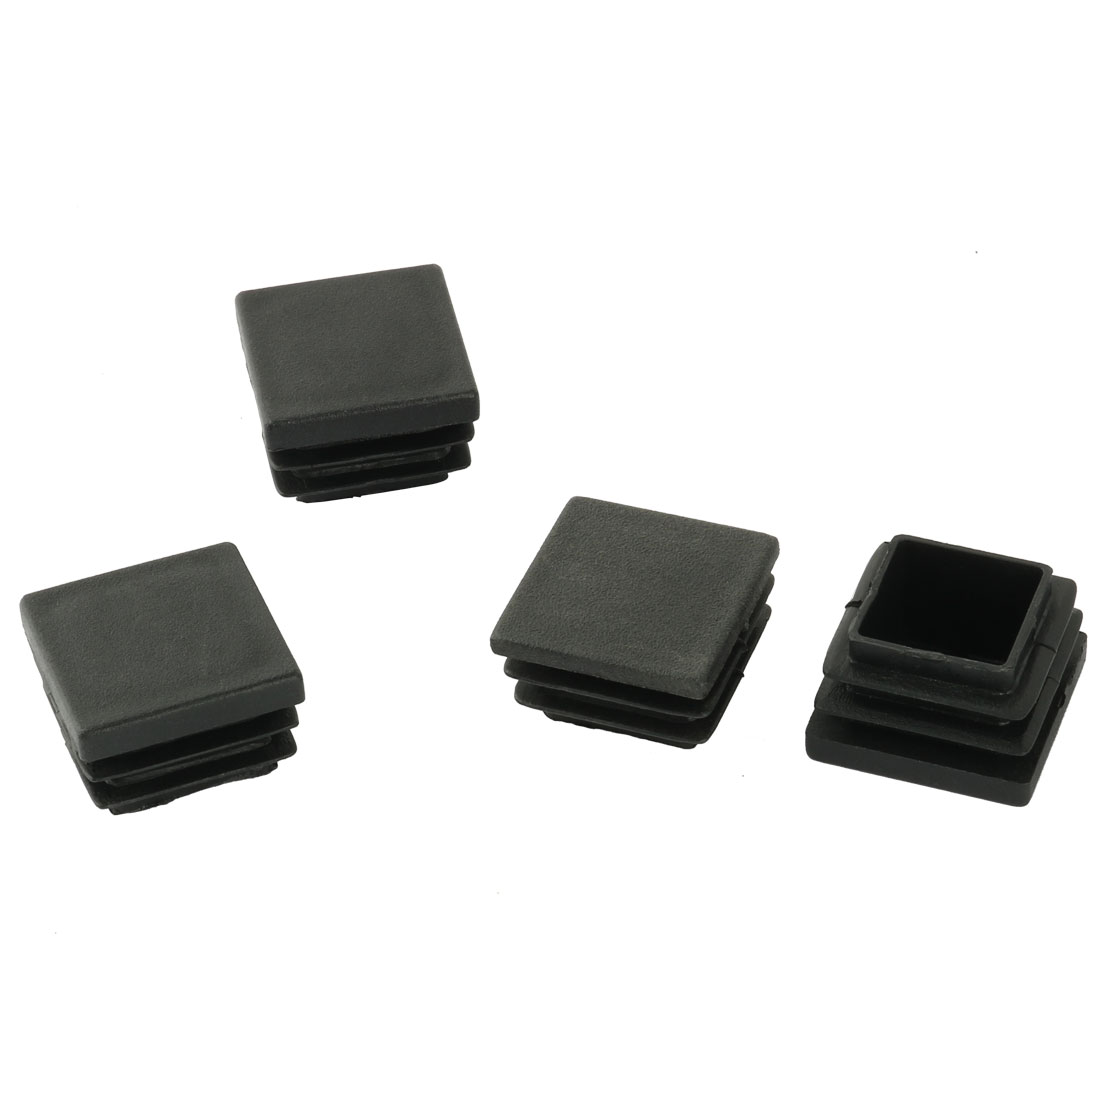 4 Pcs Plastic Square Blanking End Caps Tubing Tube Inserts 30mm x 30mm